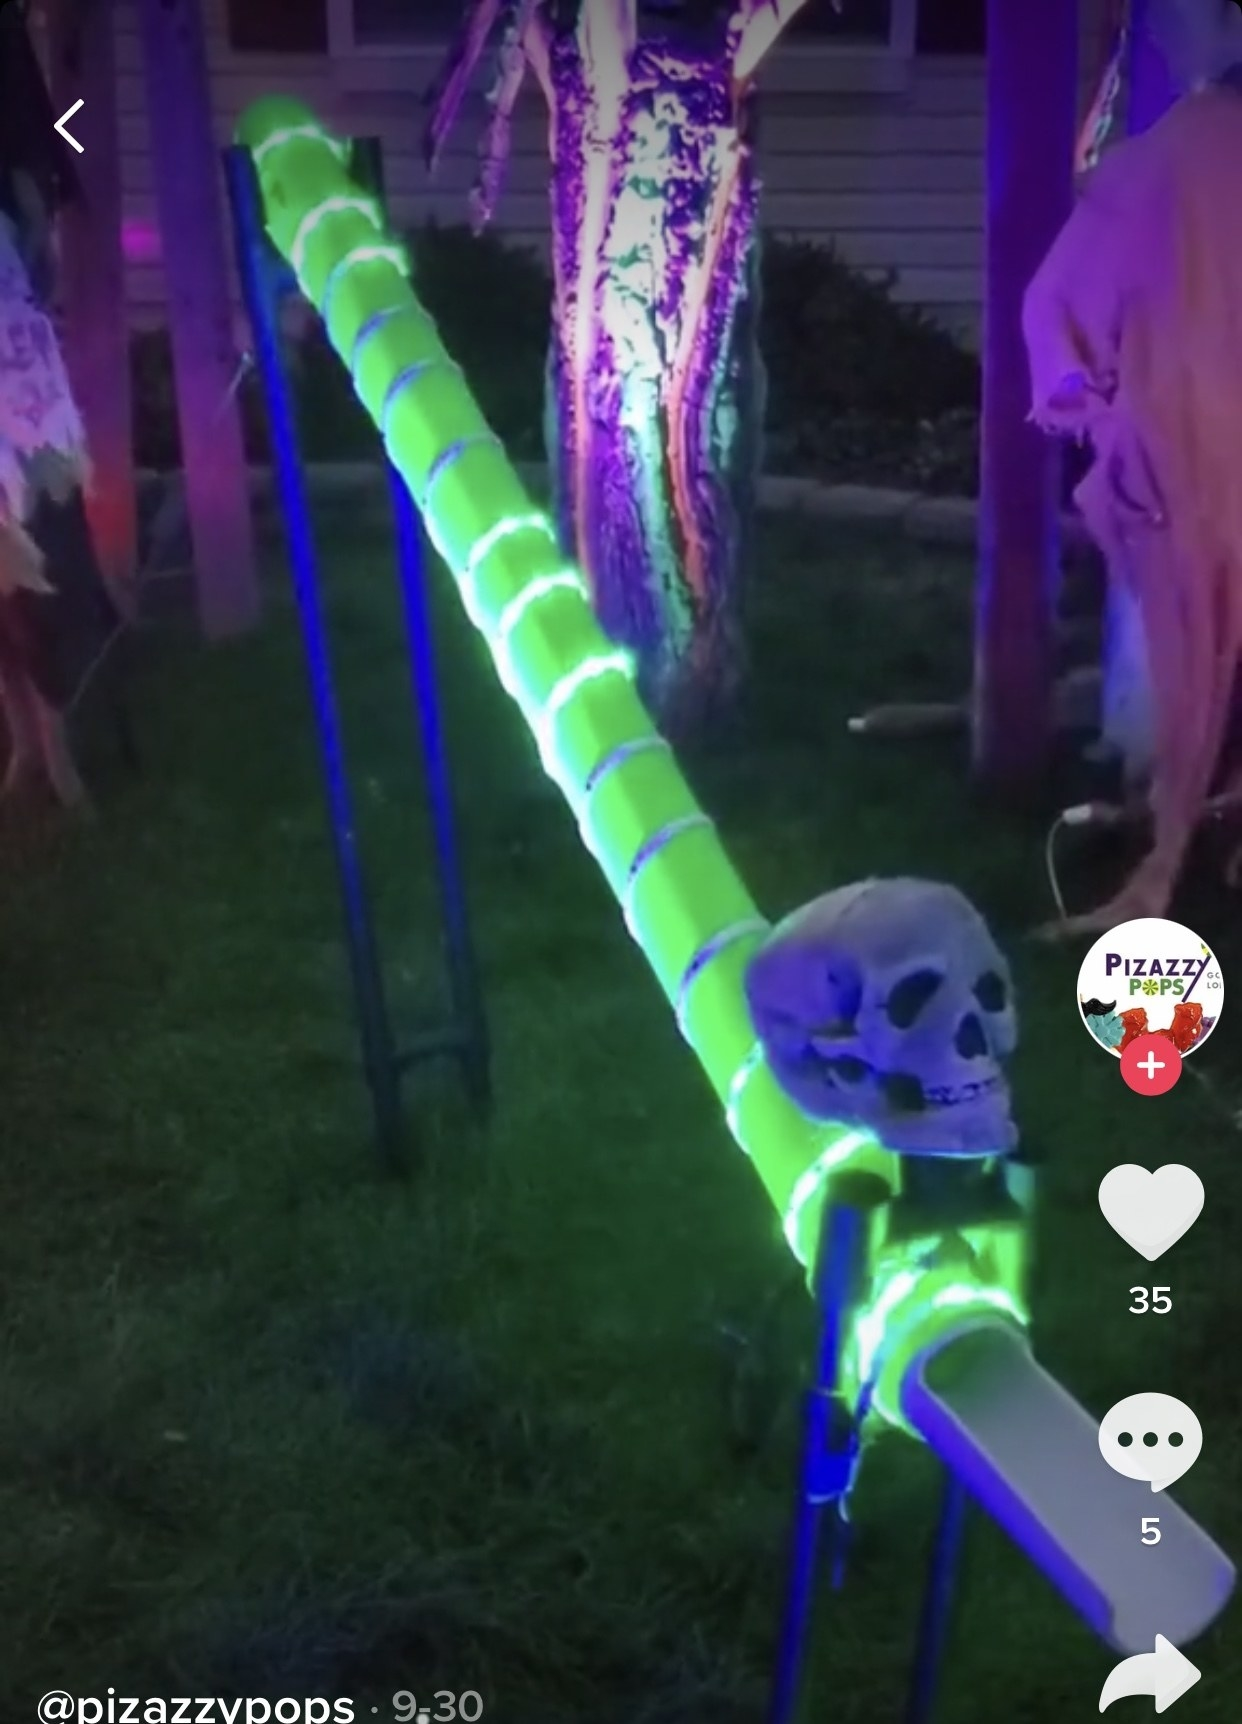 Glow-in-the-dark chute with a skull at the bottom